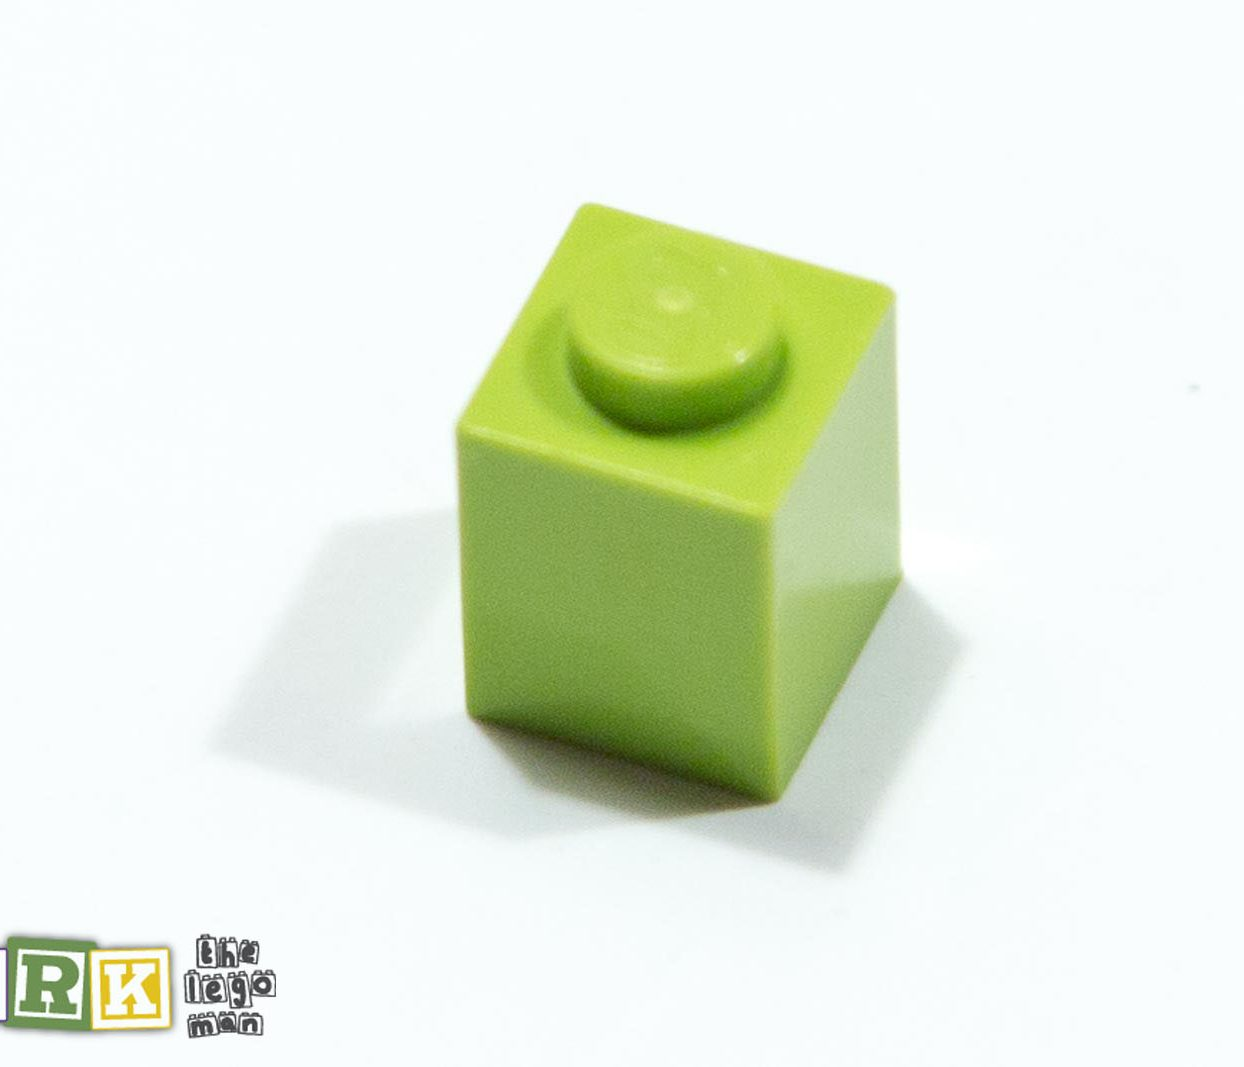 4220634 3005 Bright Yellow Green 1x1 Brick